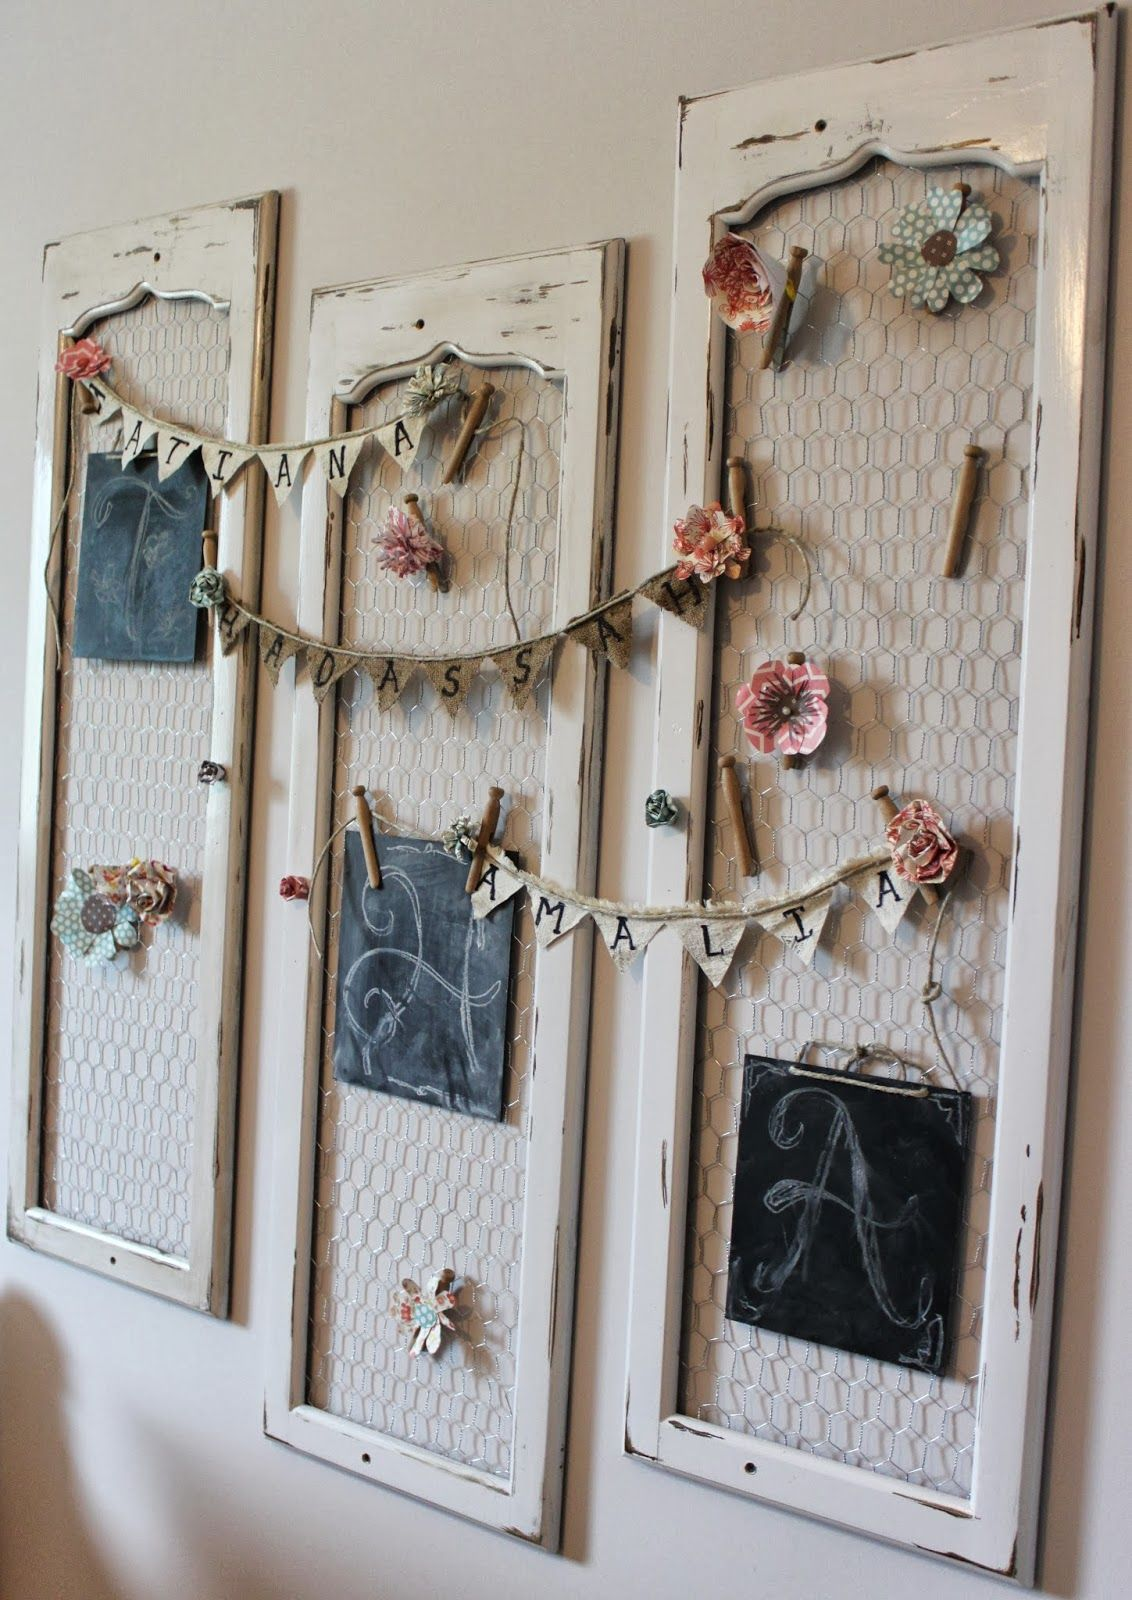 Deko Selber Machen Vintage 37 Amazing Diy Shabby Chic Decoration Ideas You Won T Want To Live